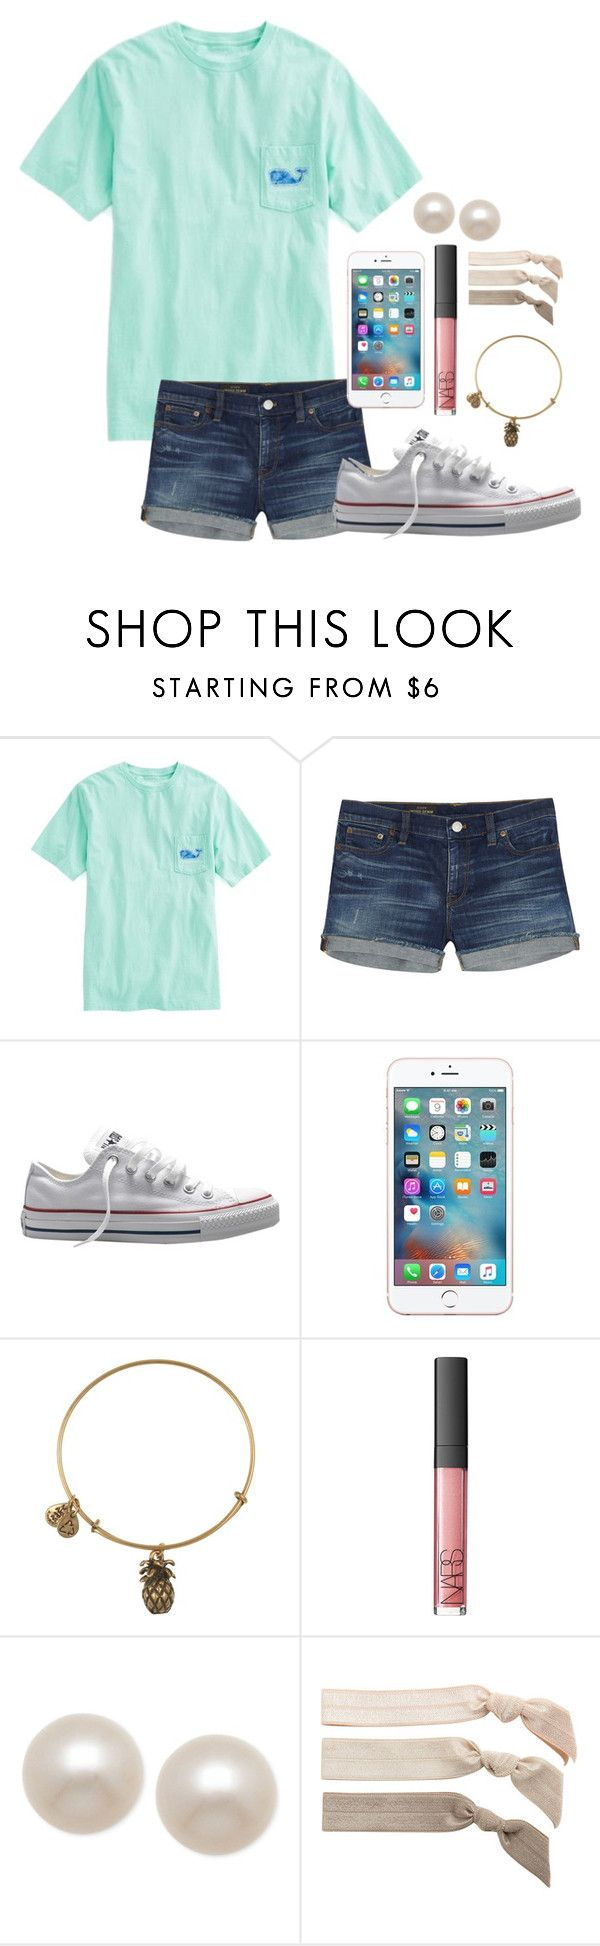 """Day 2-Last Day of School"" by whalesandprints ❤ liked on Polyvore featuring Vineyard Vines, J.Crew, Converse, Alex and Ani, NARS Cosmetics, Honora, Emi-Jay and funinthesunwithmollyandellie"